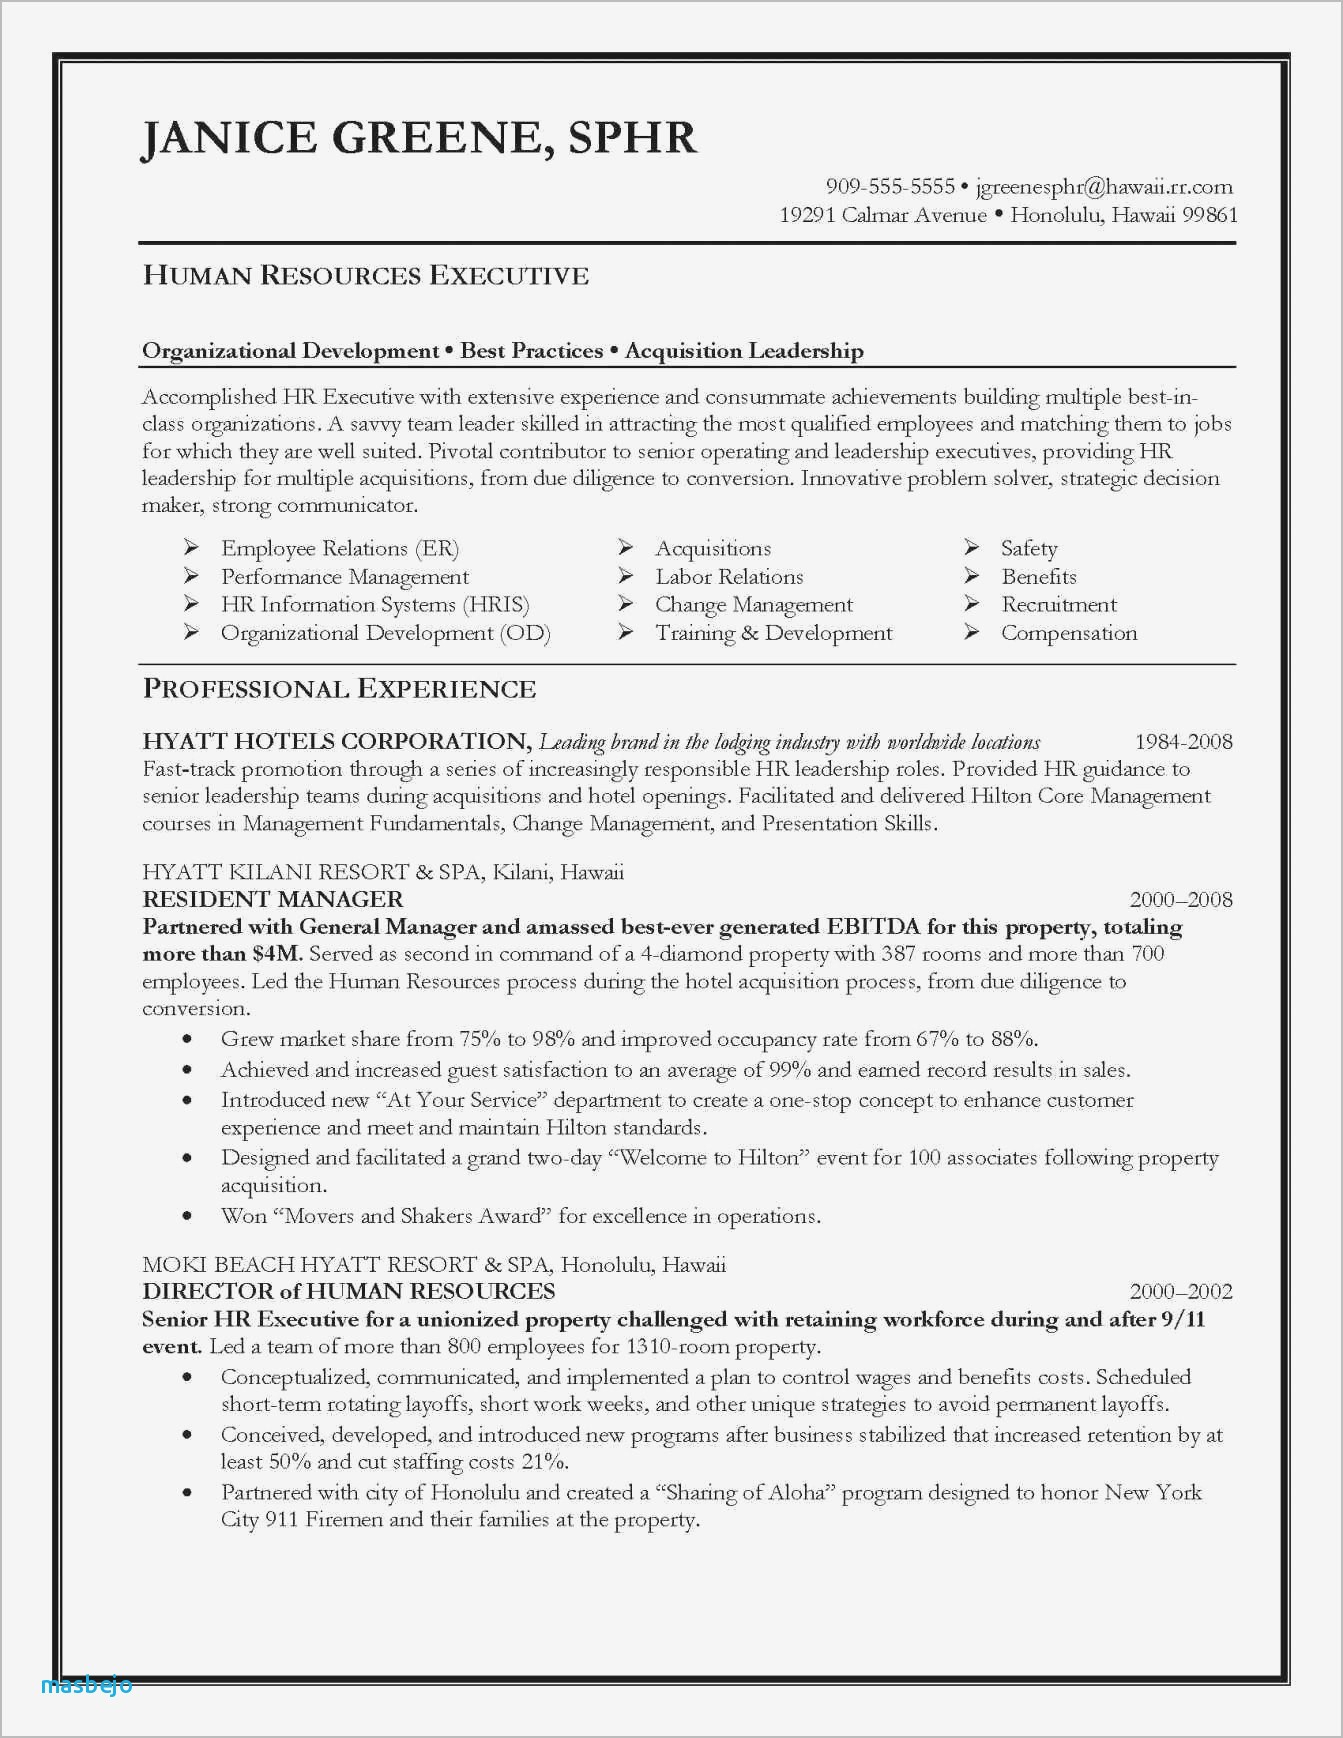 Professional Summary Resume Examples - Professional Summary Resume Examples